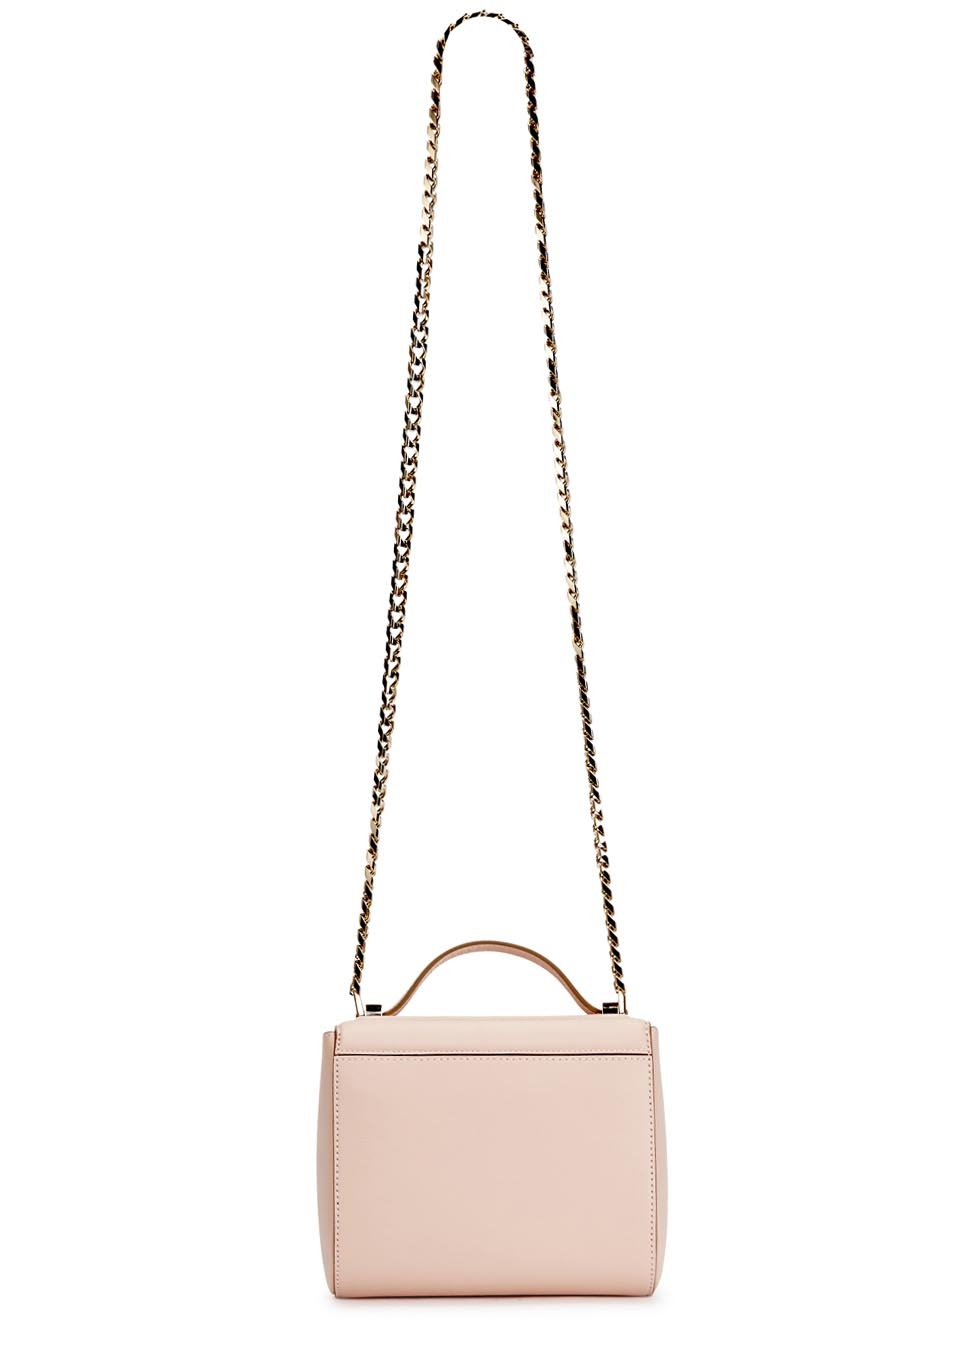 df75d8e785 Gallery. Previously sold at: Harvey Nichols · Women's Box Bags Women's Givenchy  Pandora